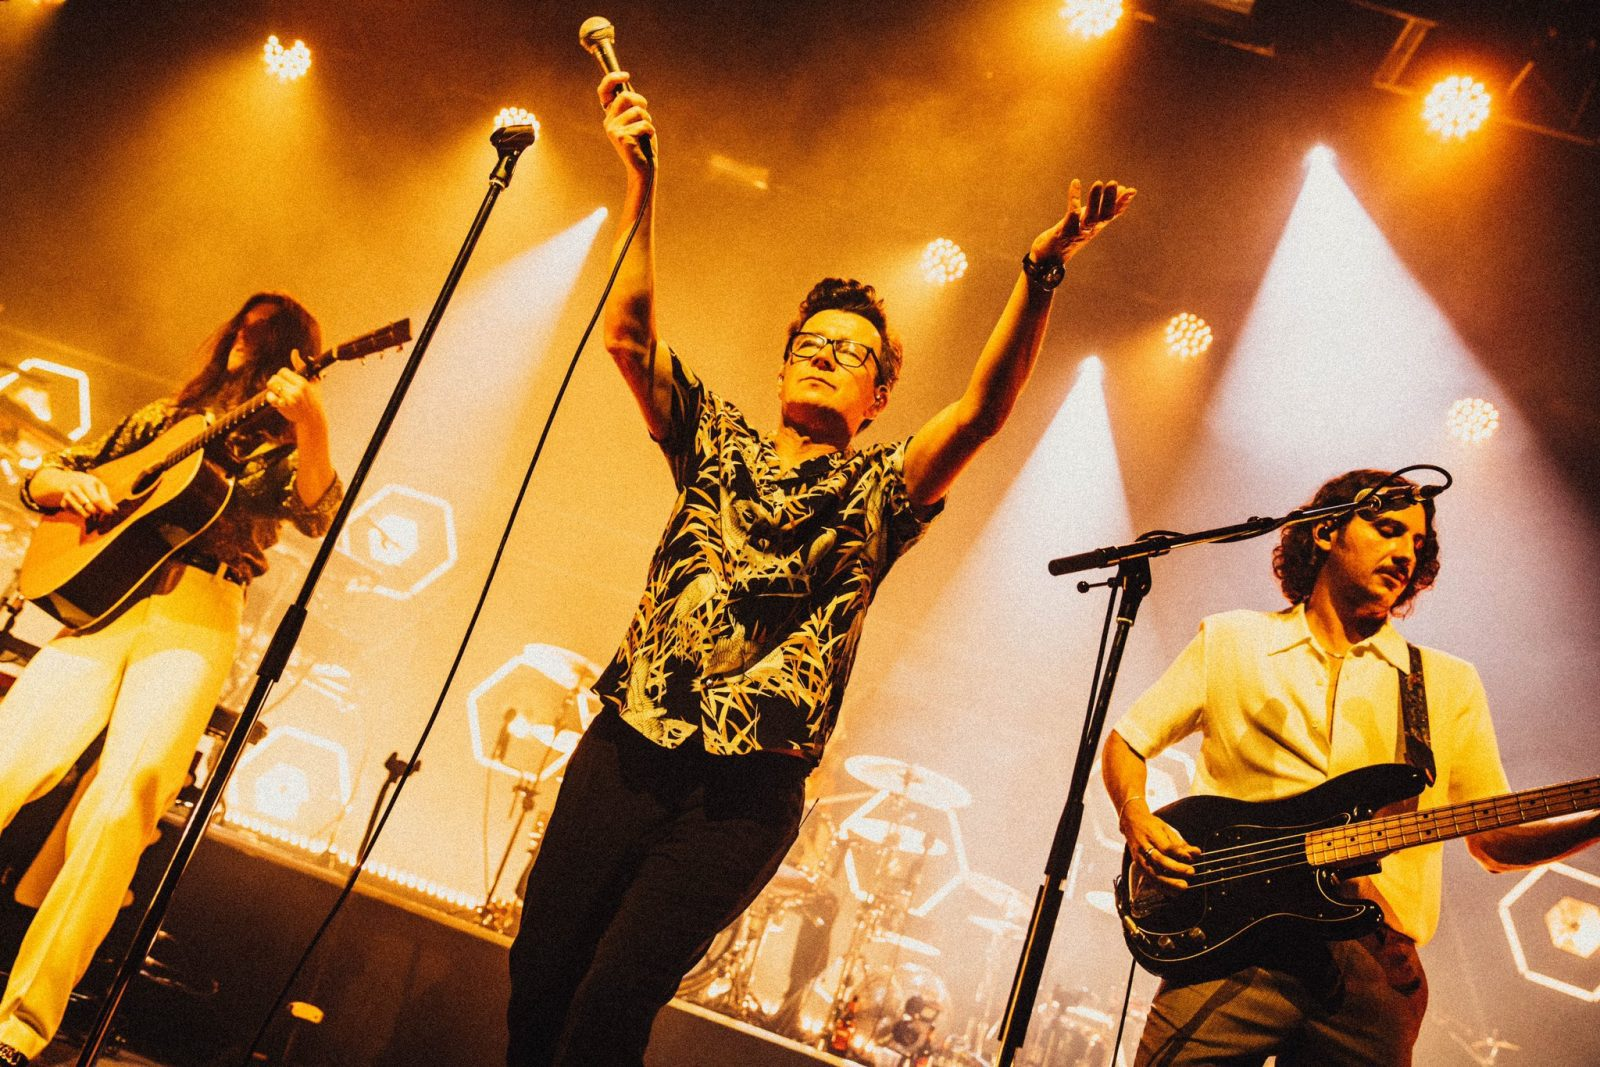 Blossoms and Rick Astley to play two gigs performing only The Smiths songs, The Manc